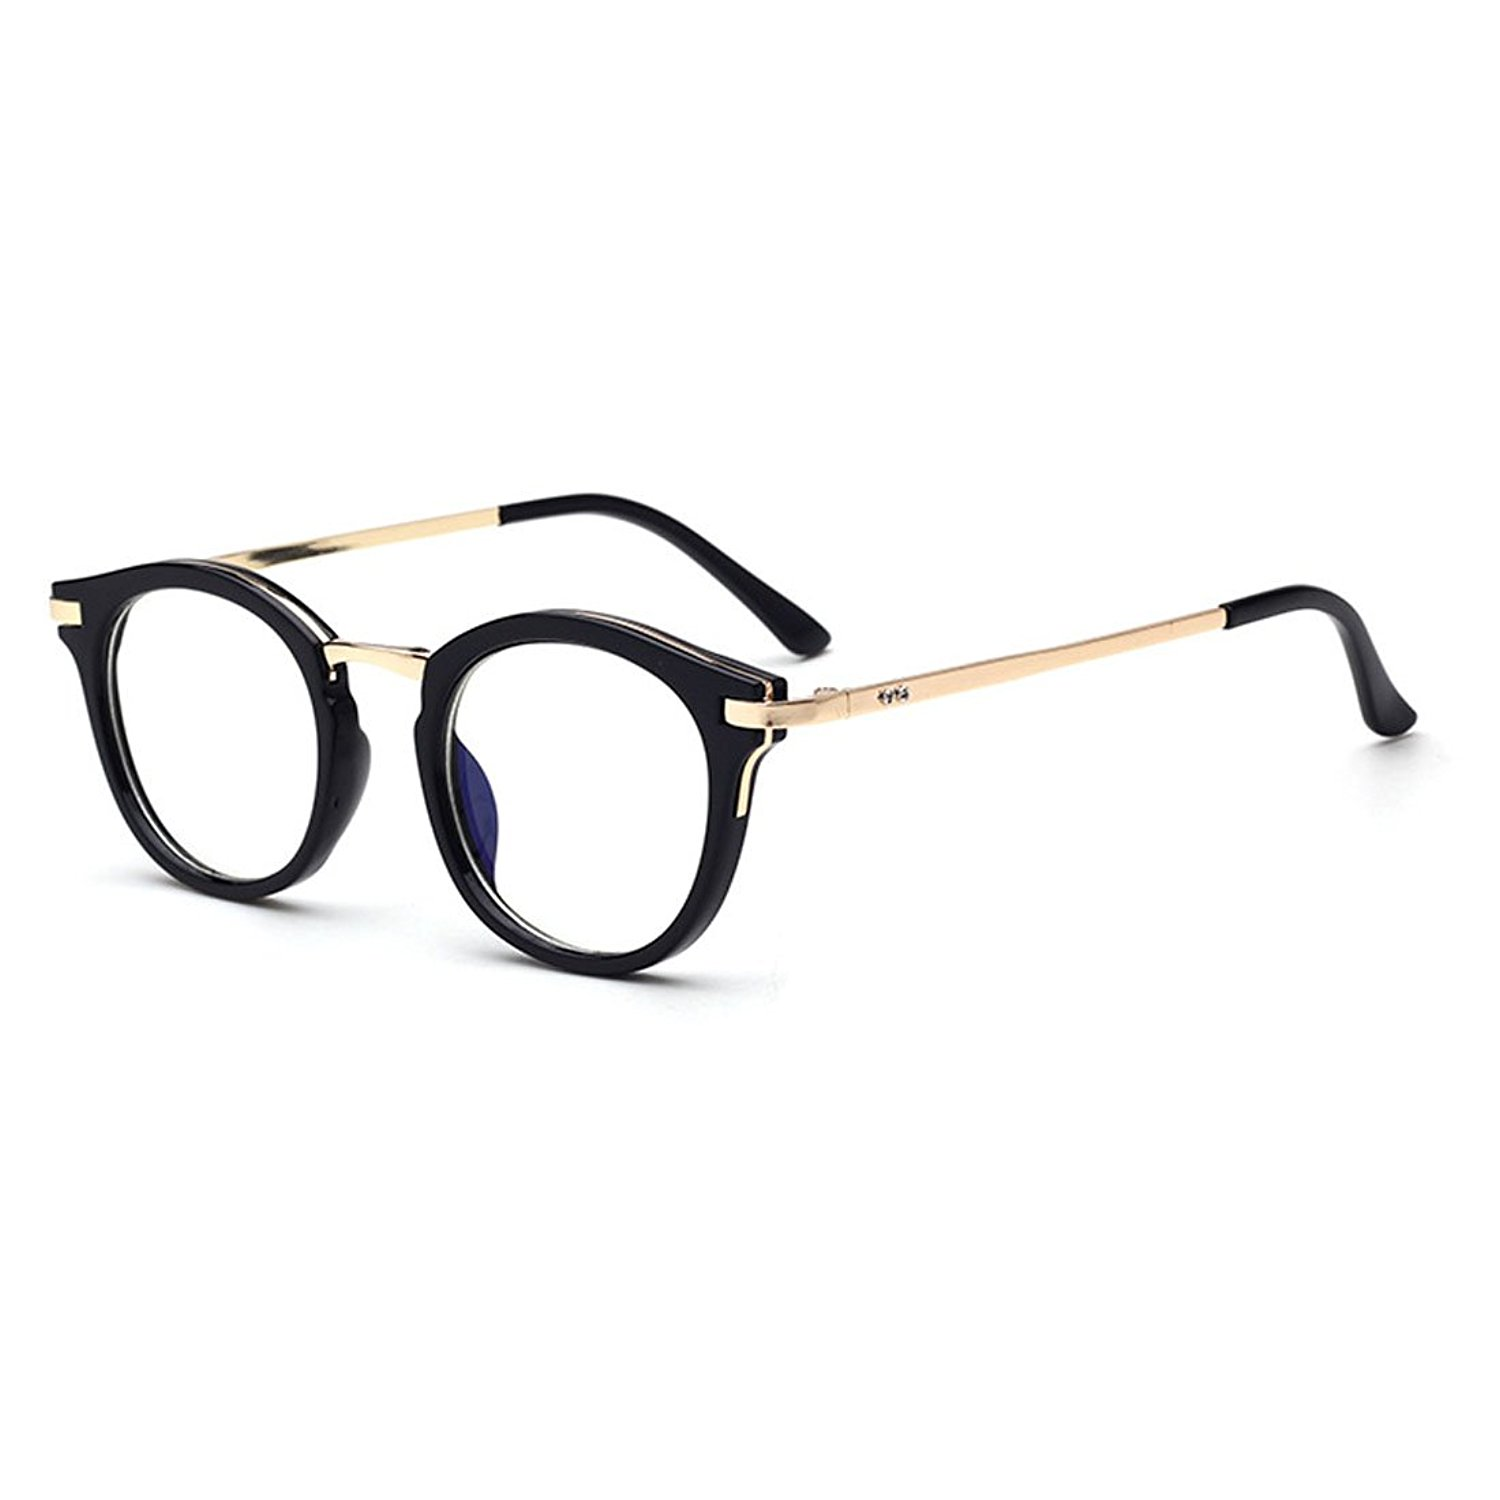 Amazon.com: D.King Vintage Round Prescription Eyeglasses Horn Rim ...